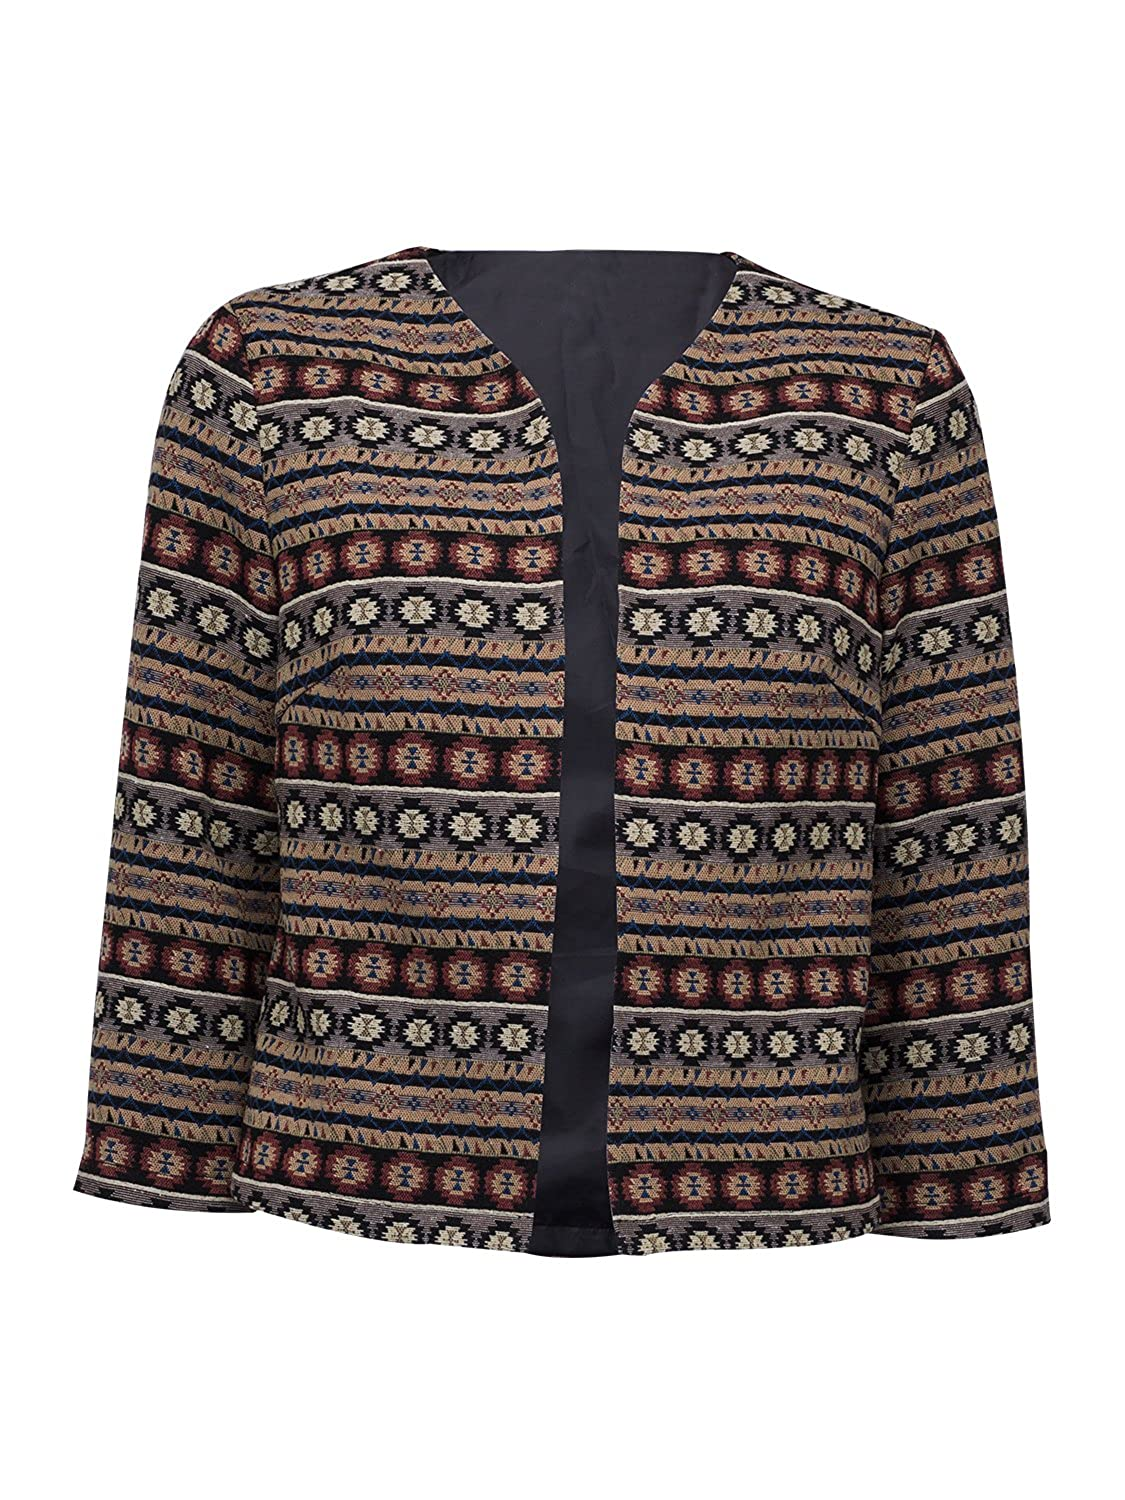 Choies Women Geo-Tribal Ethnic Embroidered 3/4 Sleeve Cardigan Jacket Retro Printed Coat CEAFPZ